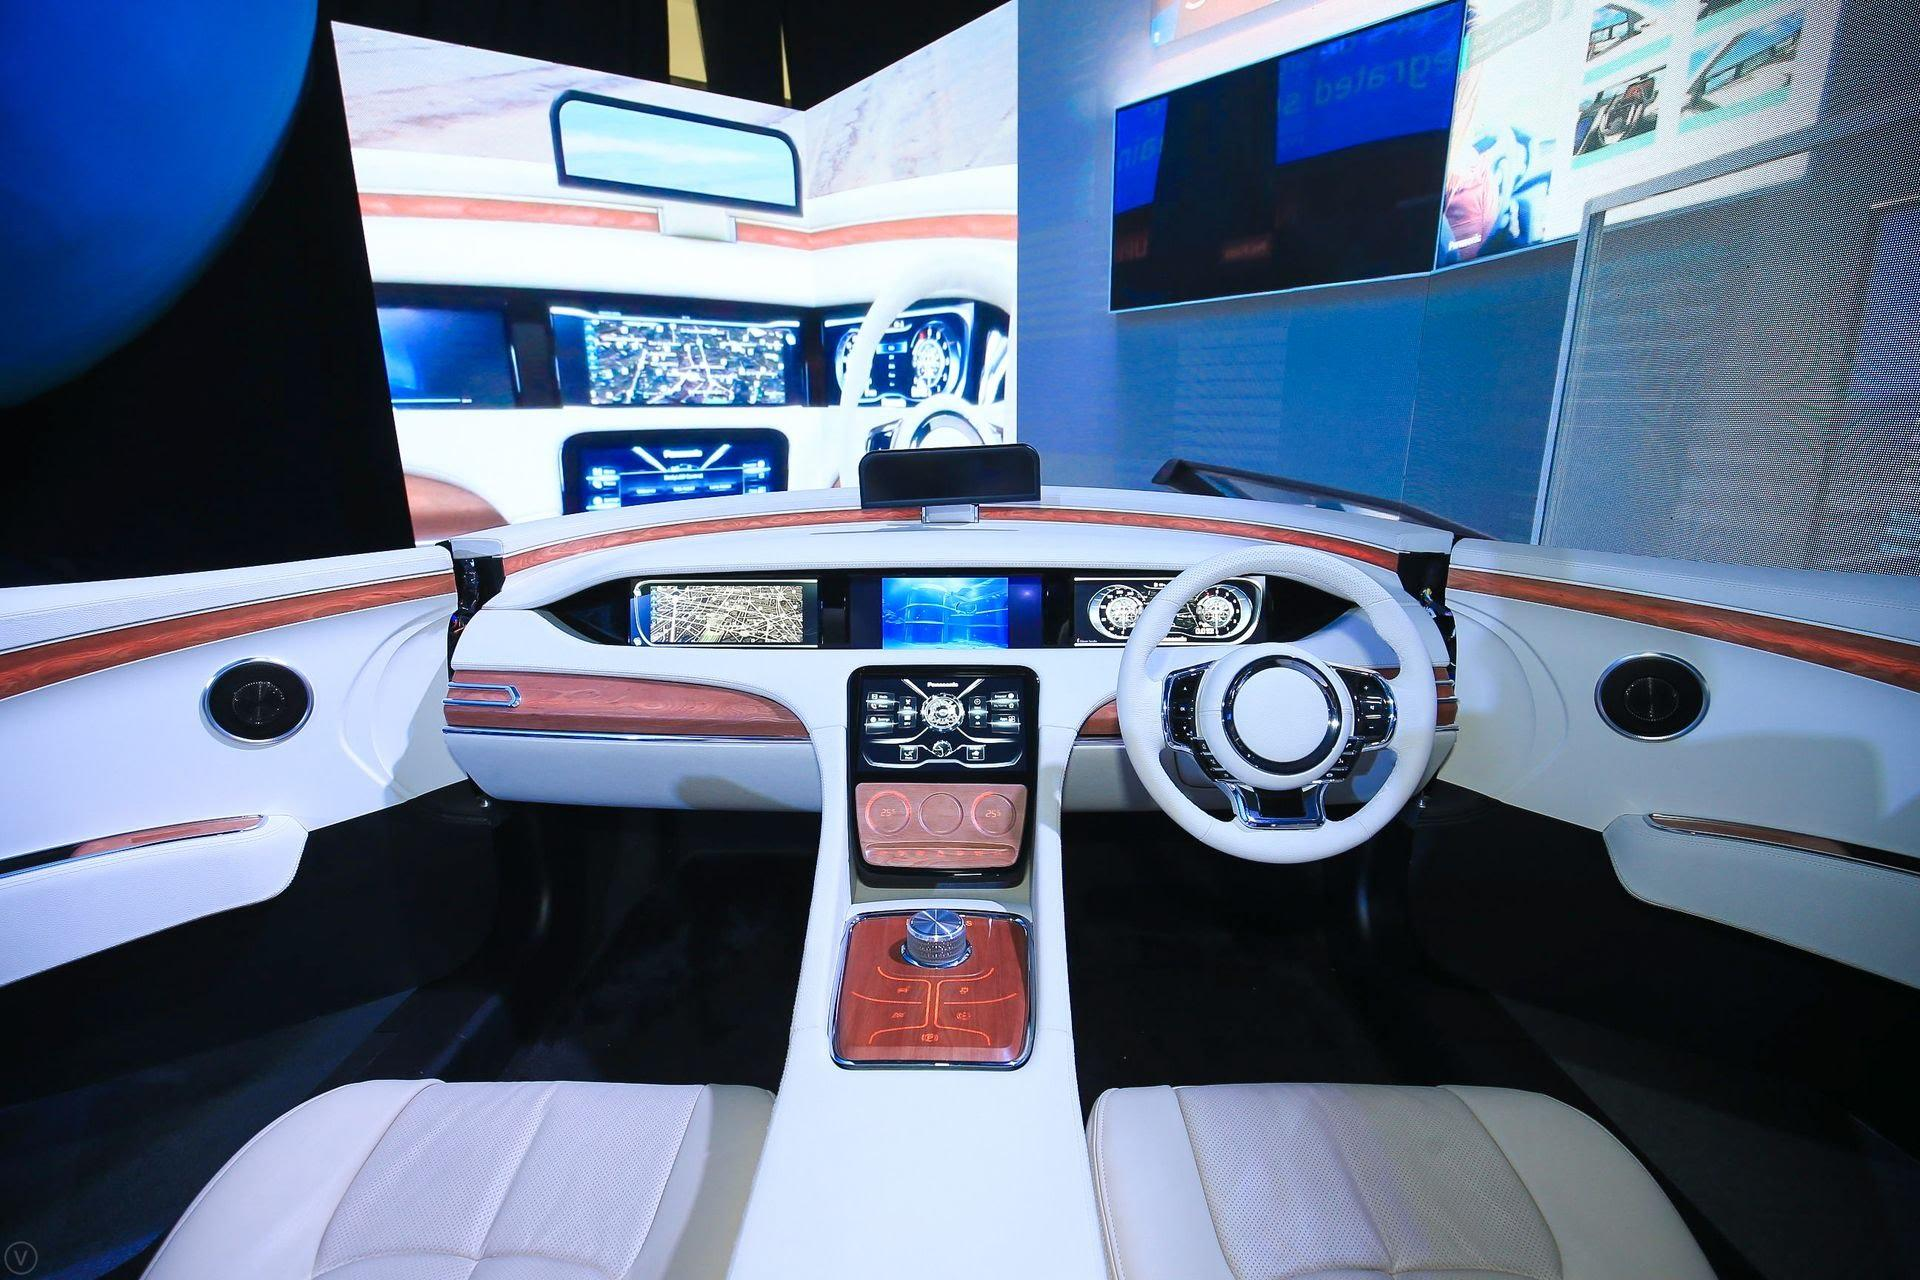 photo: automotive booth at panasonic future expo